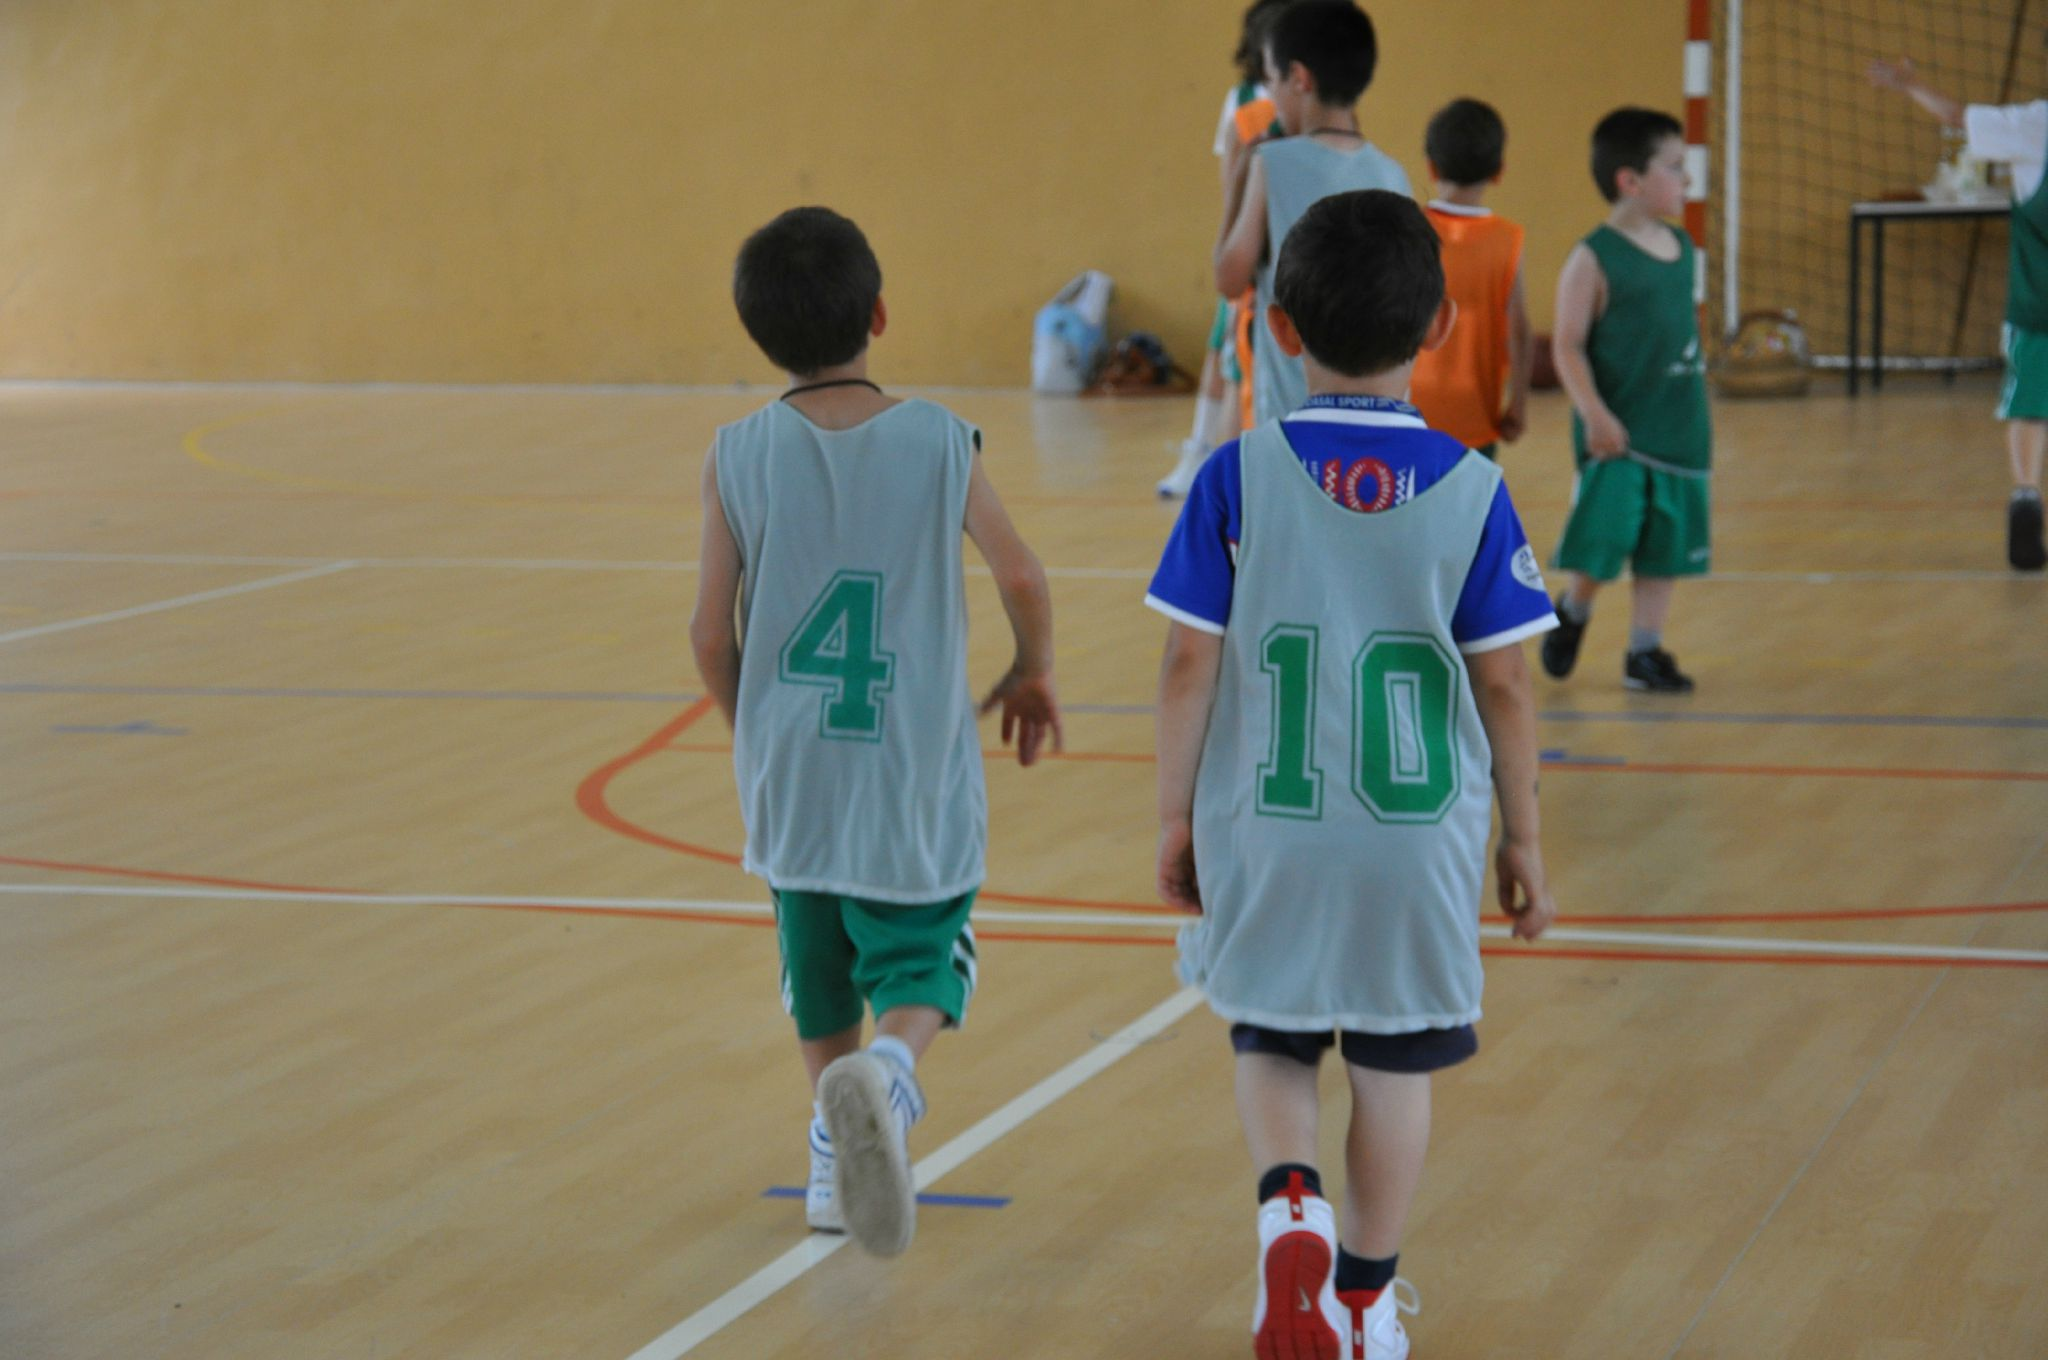 Tournoi Parents Enfants 2012 (90)